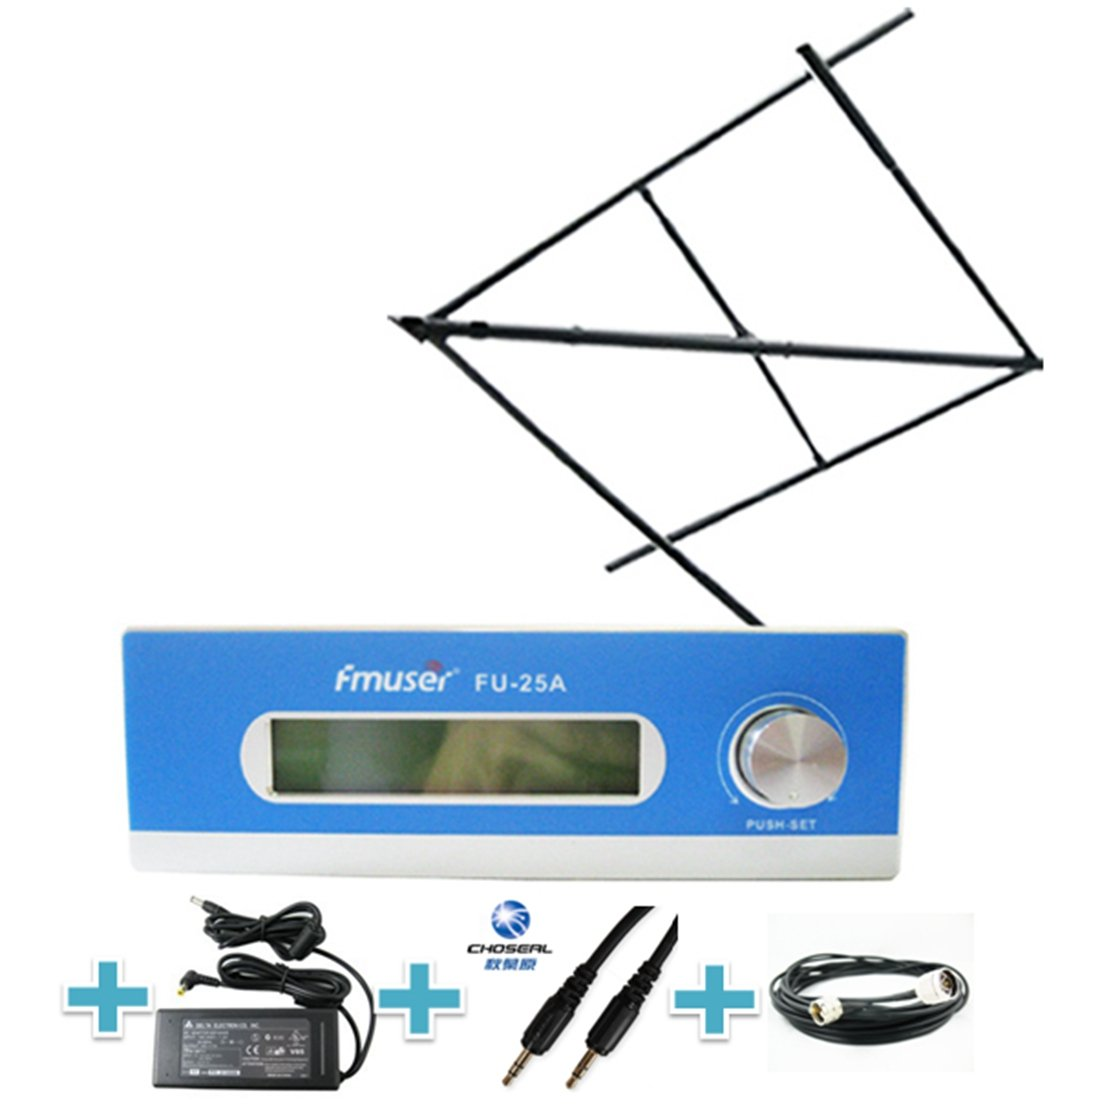 FMUSER 25W Long Range FM Transmitter Broadcast Set, 0-25W Power Adjustable Long Coverage Transmission, High Gain Circular Polarized Antenna Cable Set for Community Radio Station, 87-108mhz by fmuser (Image #1)